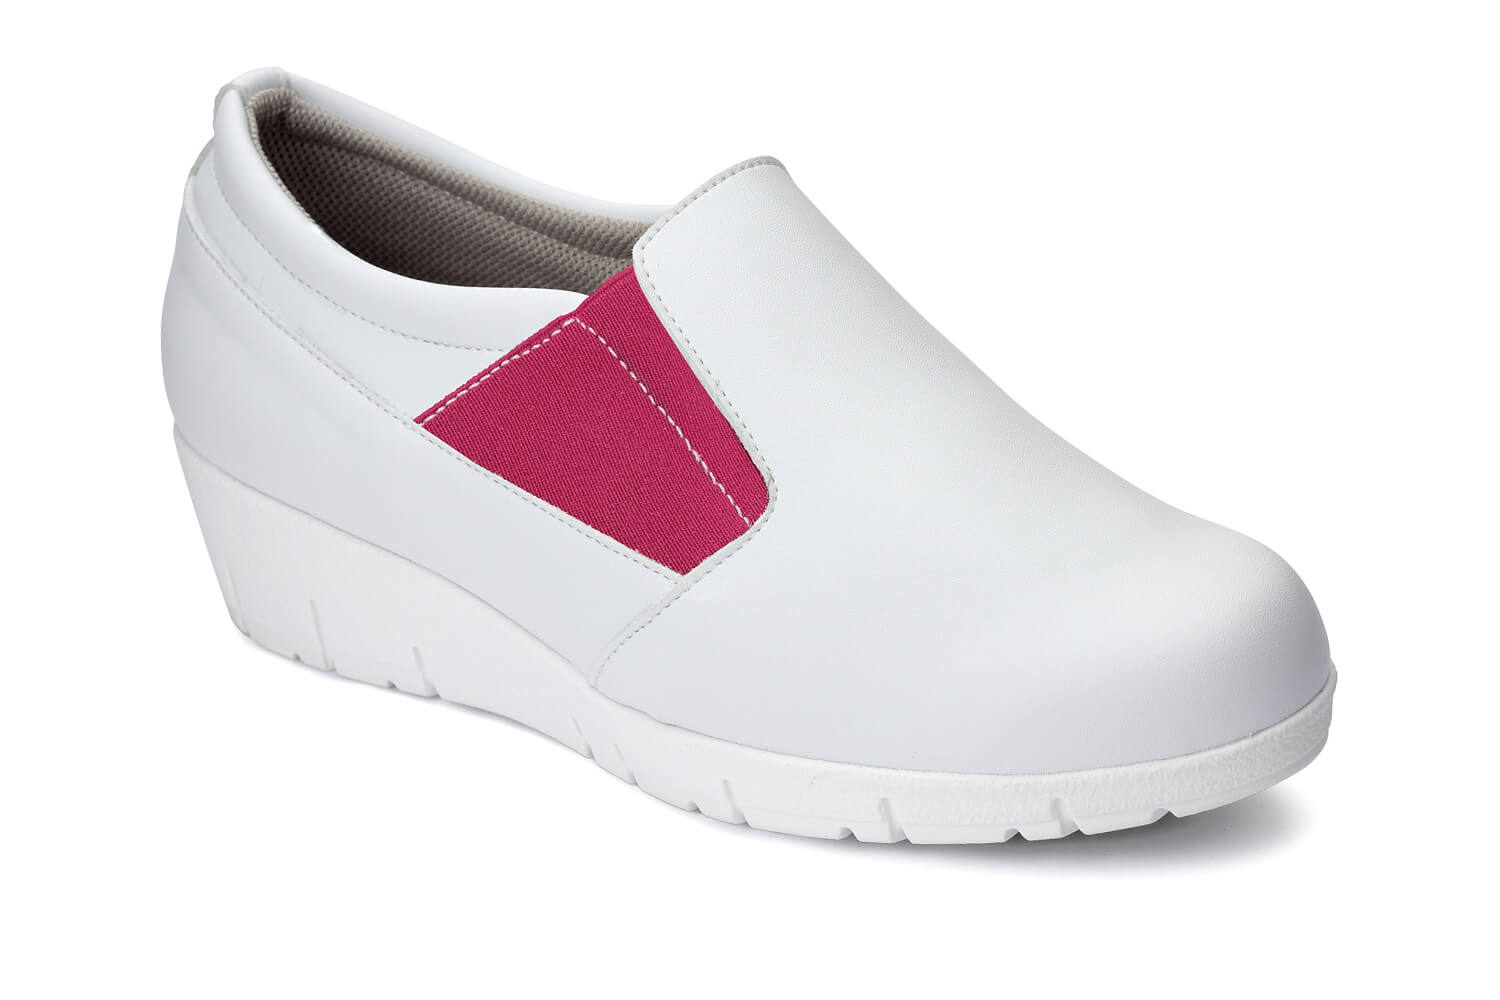 heel resistant in item single women flat flats leather s comforter genuine mother ballet comfortable casual outsole new from slip shoes soft